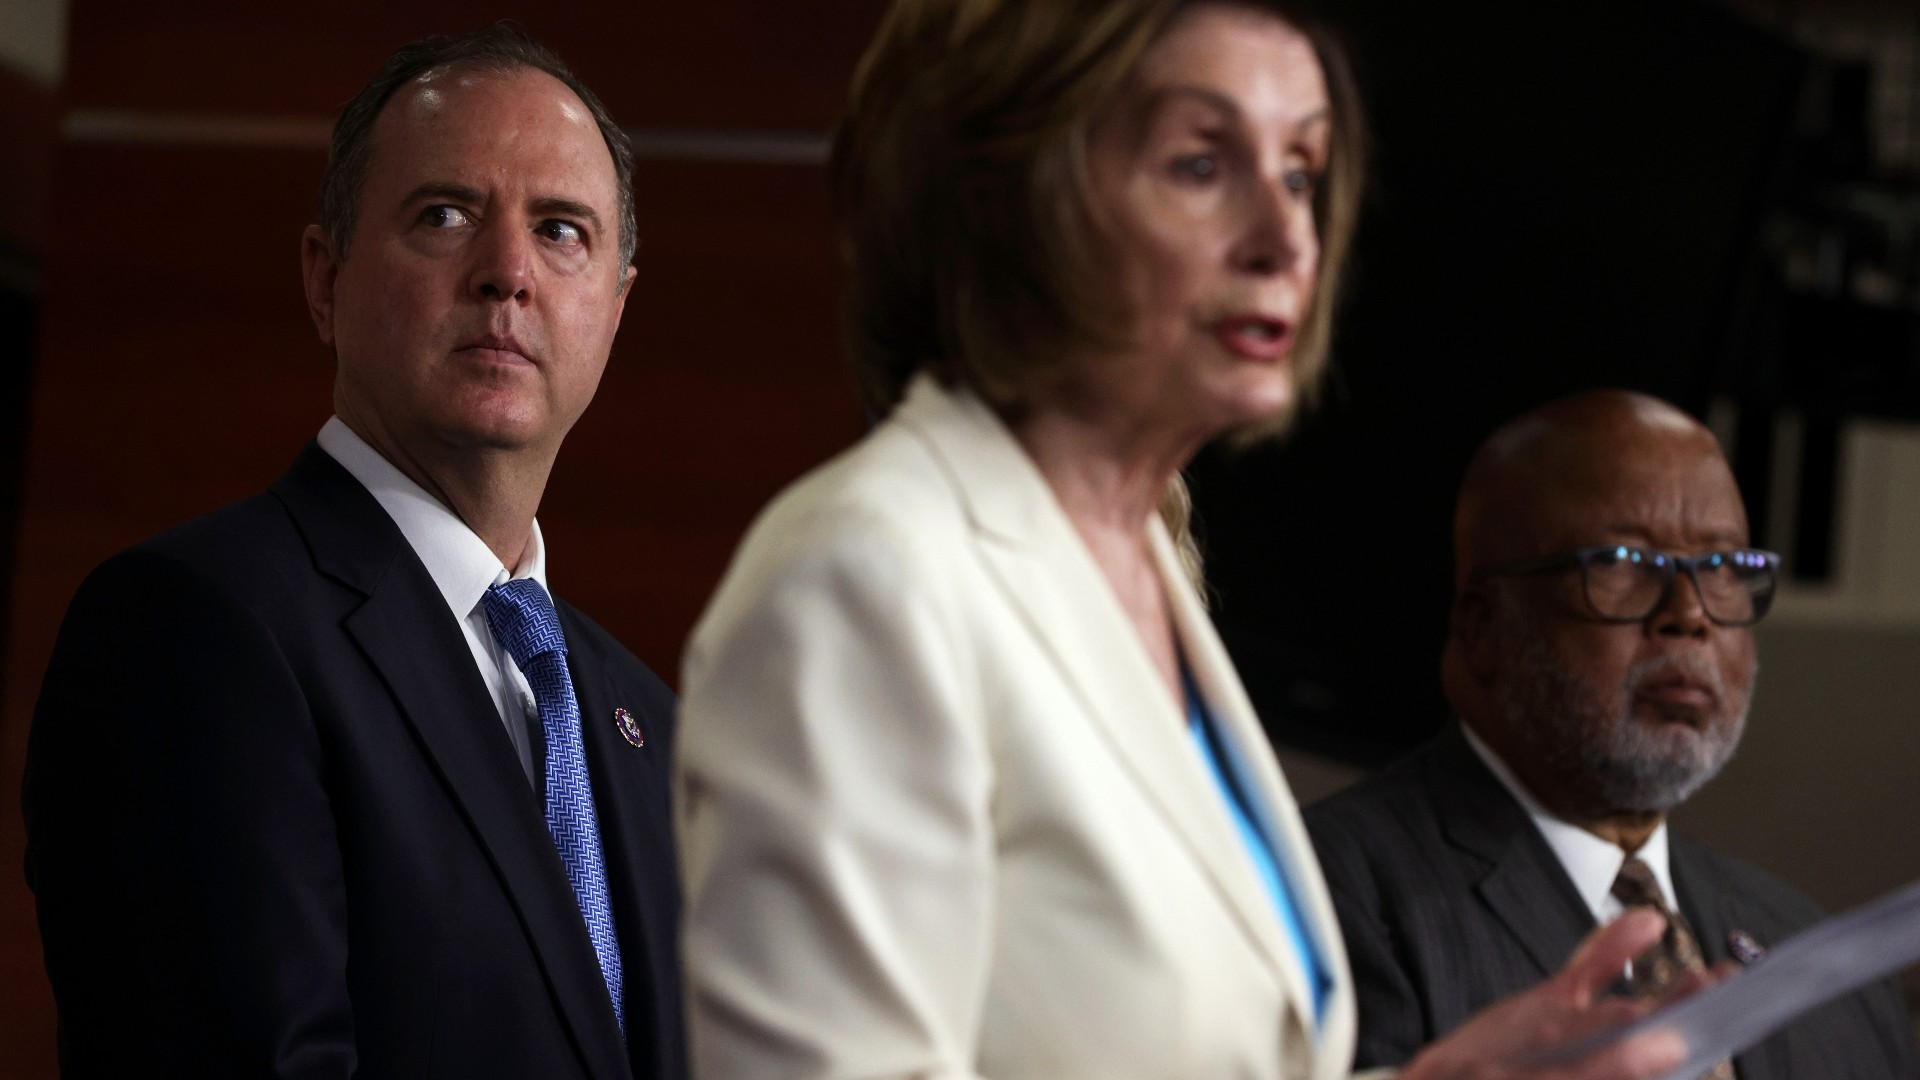 Speaker of the House Rep. Nancy Pelosi (D-CA) (2nd L) speaks as Rep. Bennie Thompson (D-MS) (R) and Rep. Adam Schiff (D-CA) (L) listen during a weekly news conference at the U.S. Capitol July 1, 2021 in Washington, DC. Speaker Pelosi announced her appointments of House Democratic members to the select committee to investigate the January 6th attack on the U.S. Capitol. (Alex Wong/Getty Images)